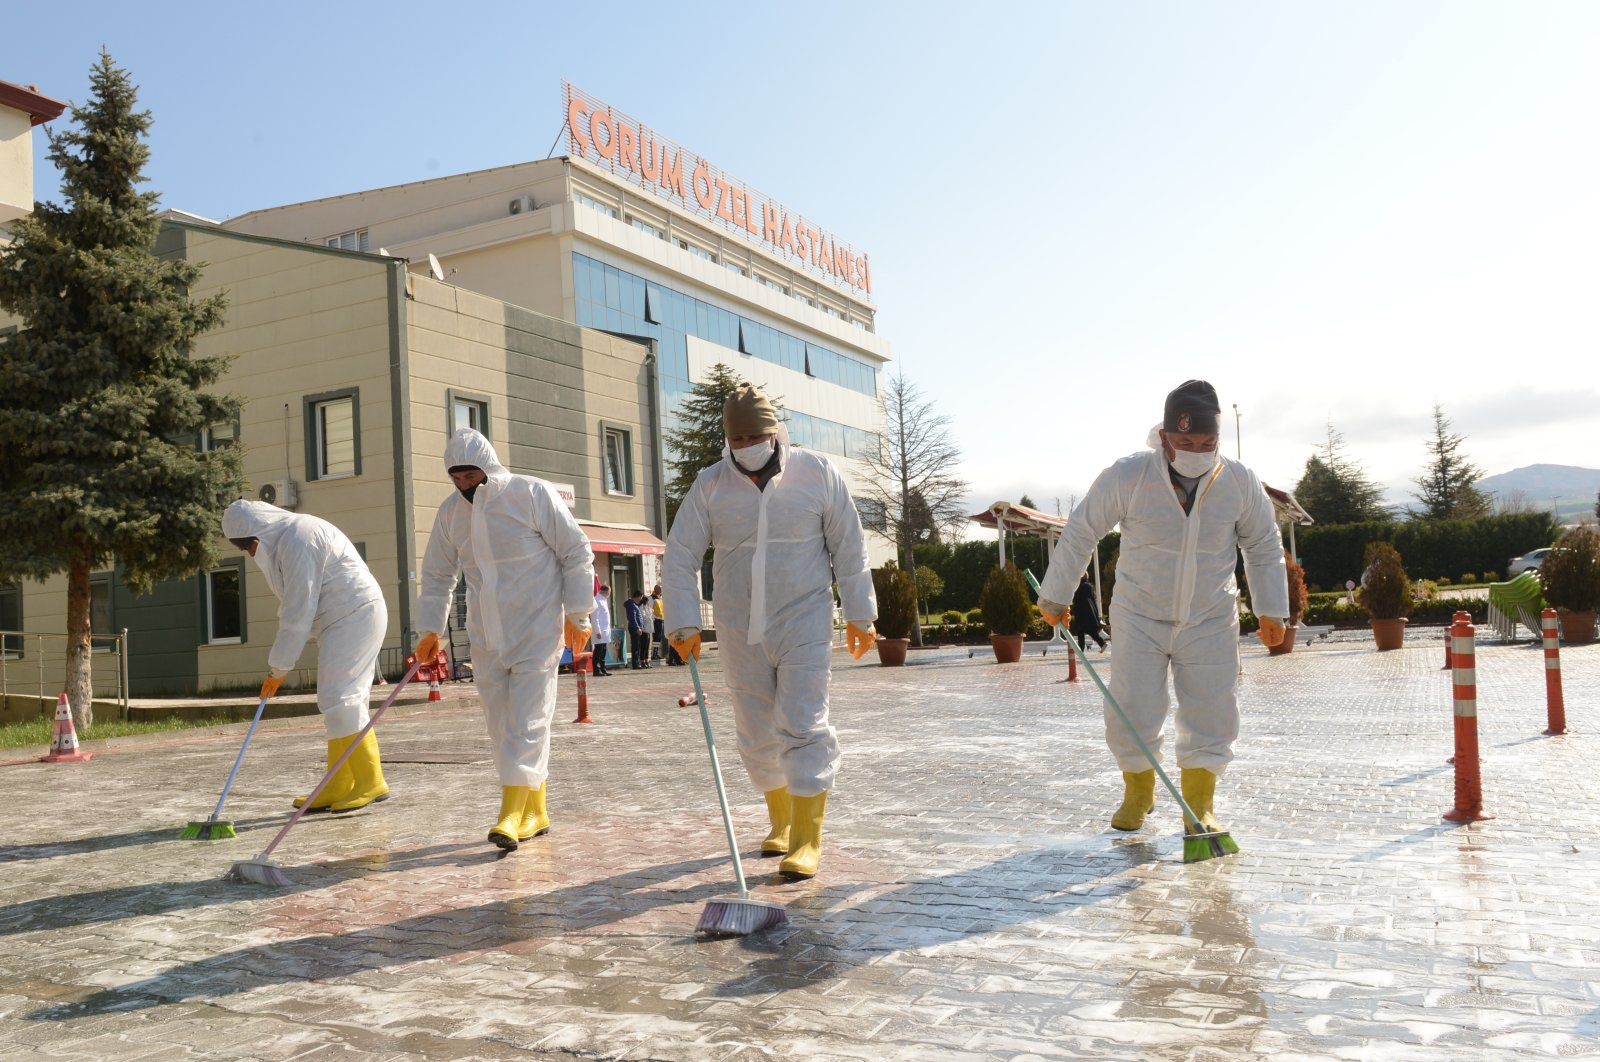 Municipality workers clean the streets in Çorum, Turkey, Thursday, April 9, 2020. (AA Photo)